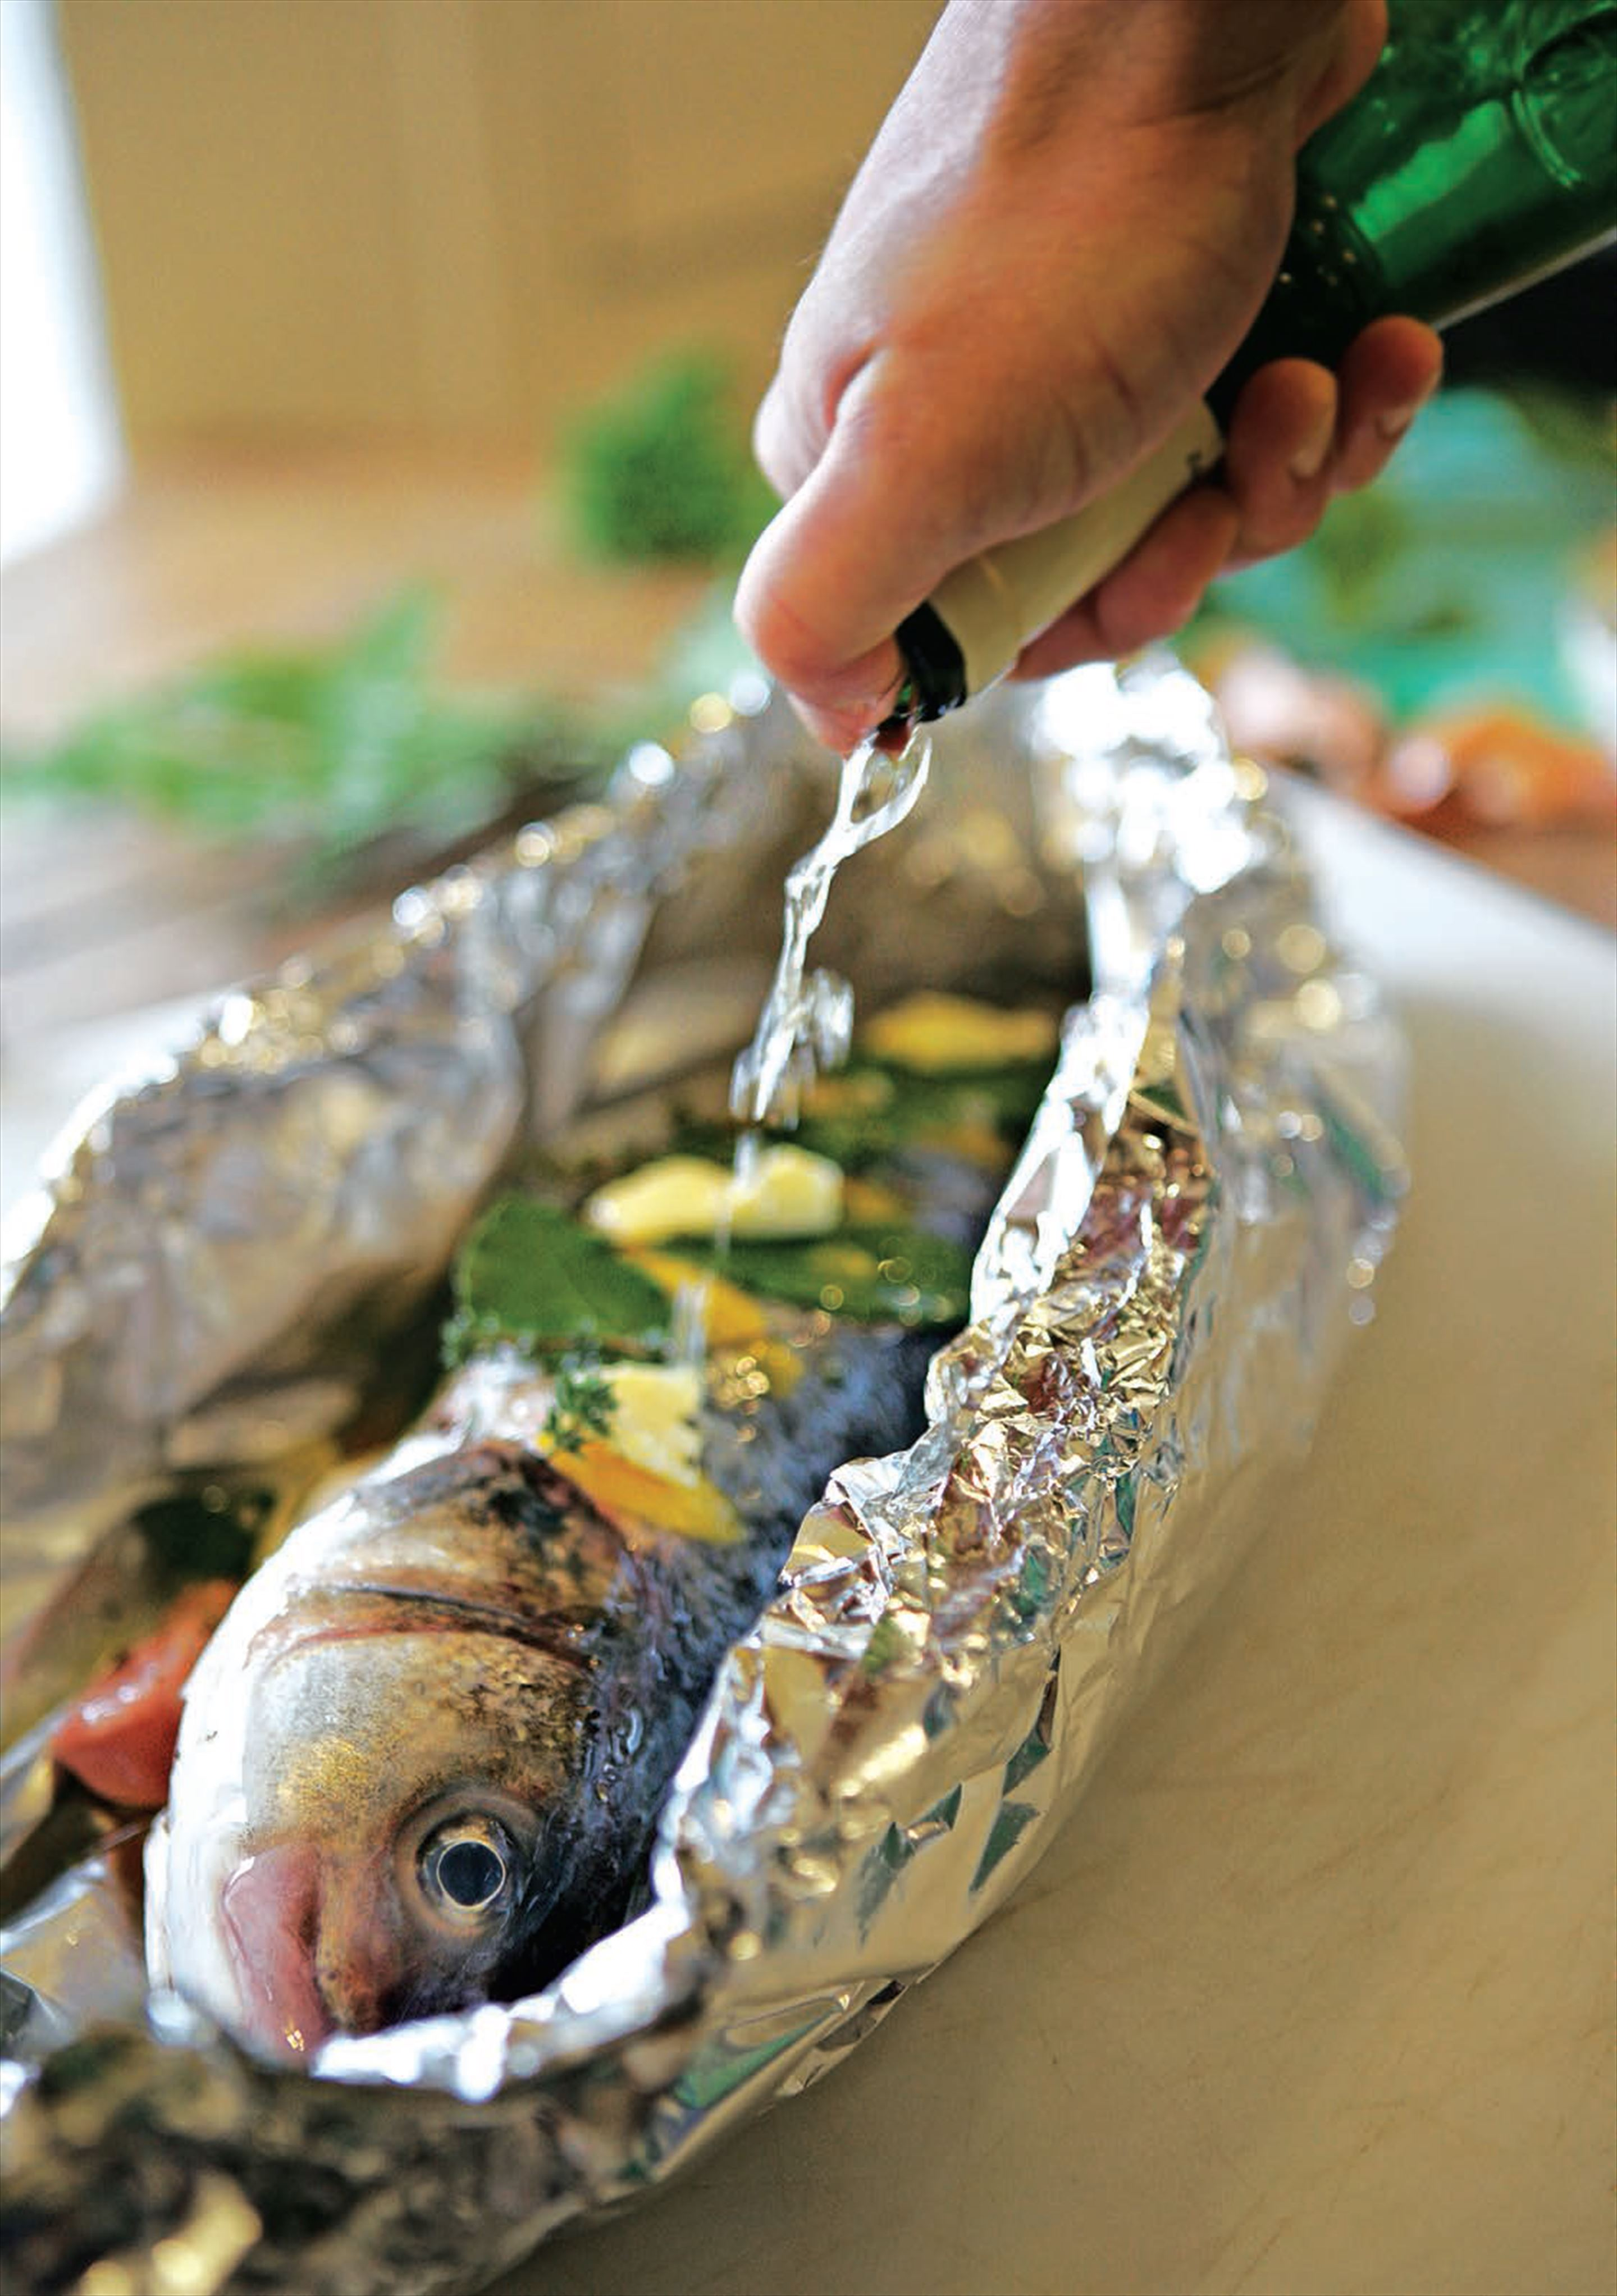 Whole fish baked in a foil parcel